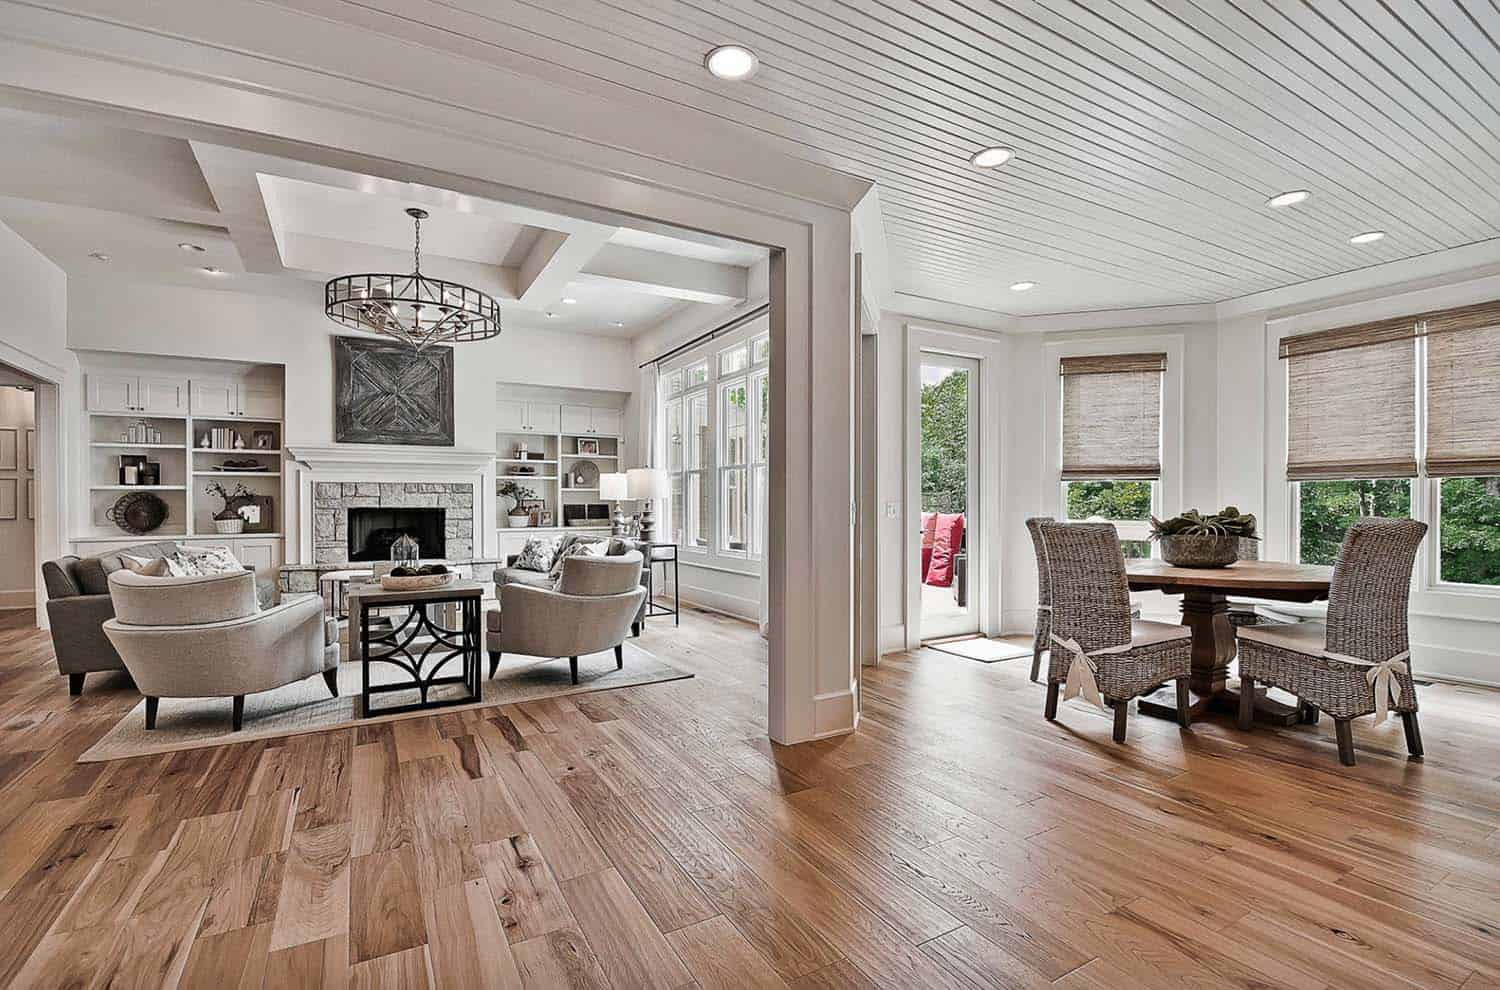 Welcoming Craftsman Style Home With Farmhouse Touches In